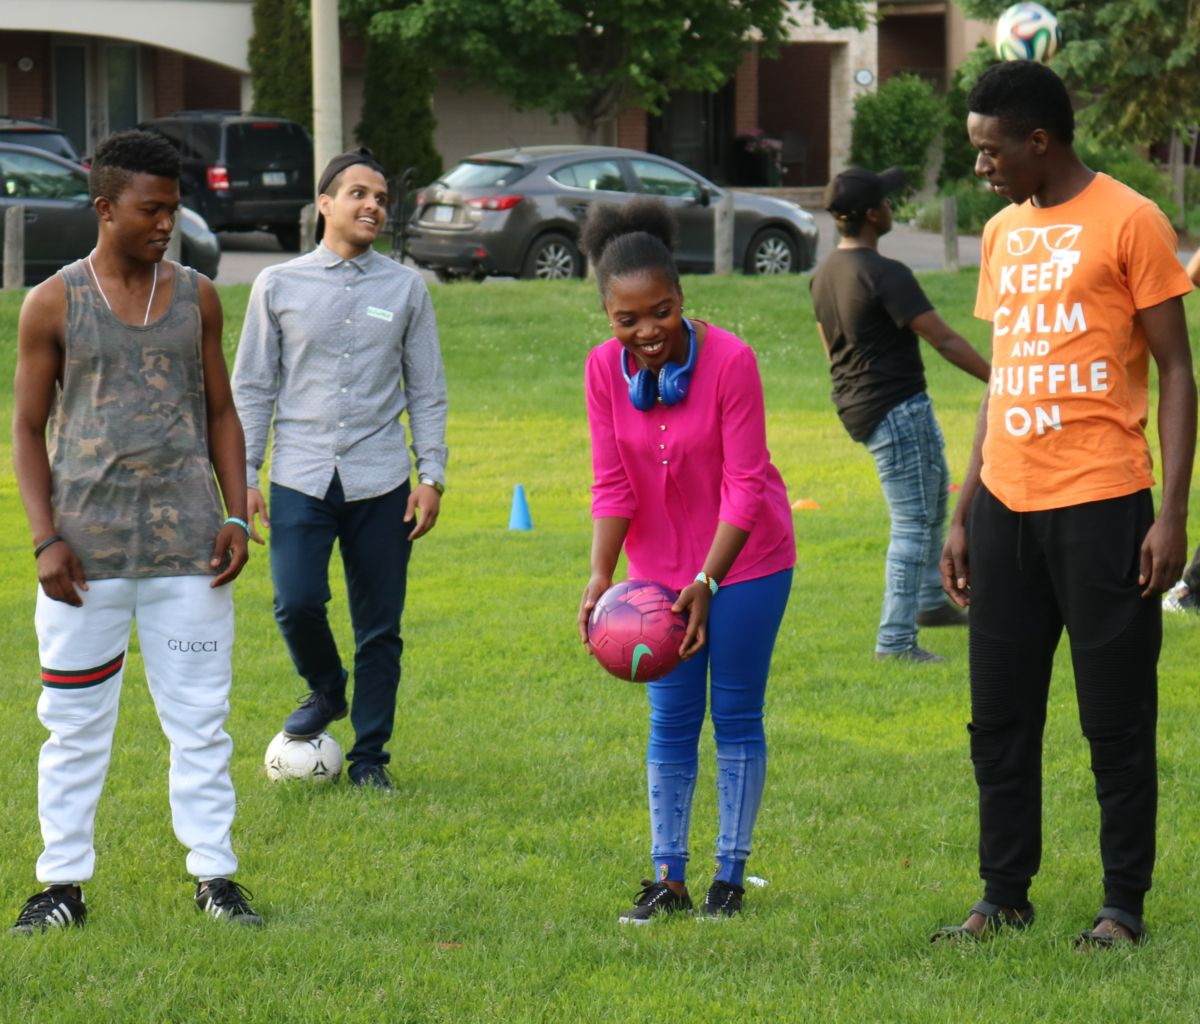 Young people kick around a soccer ball